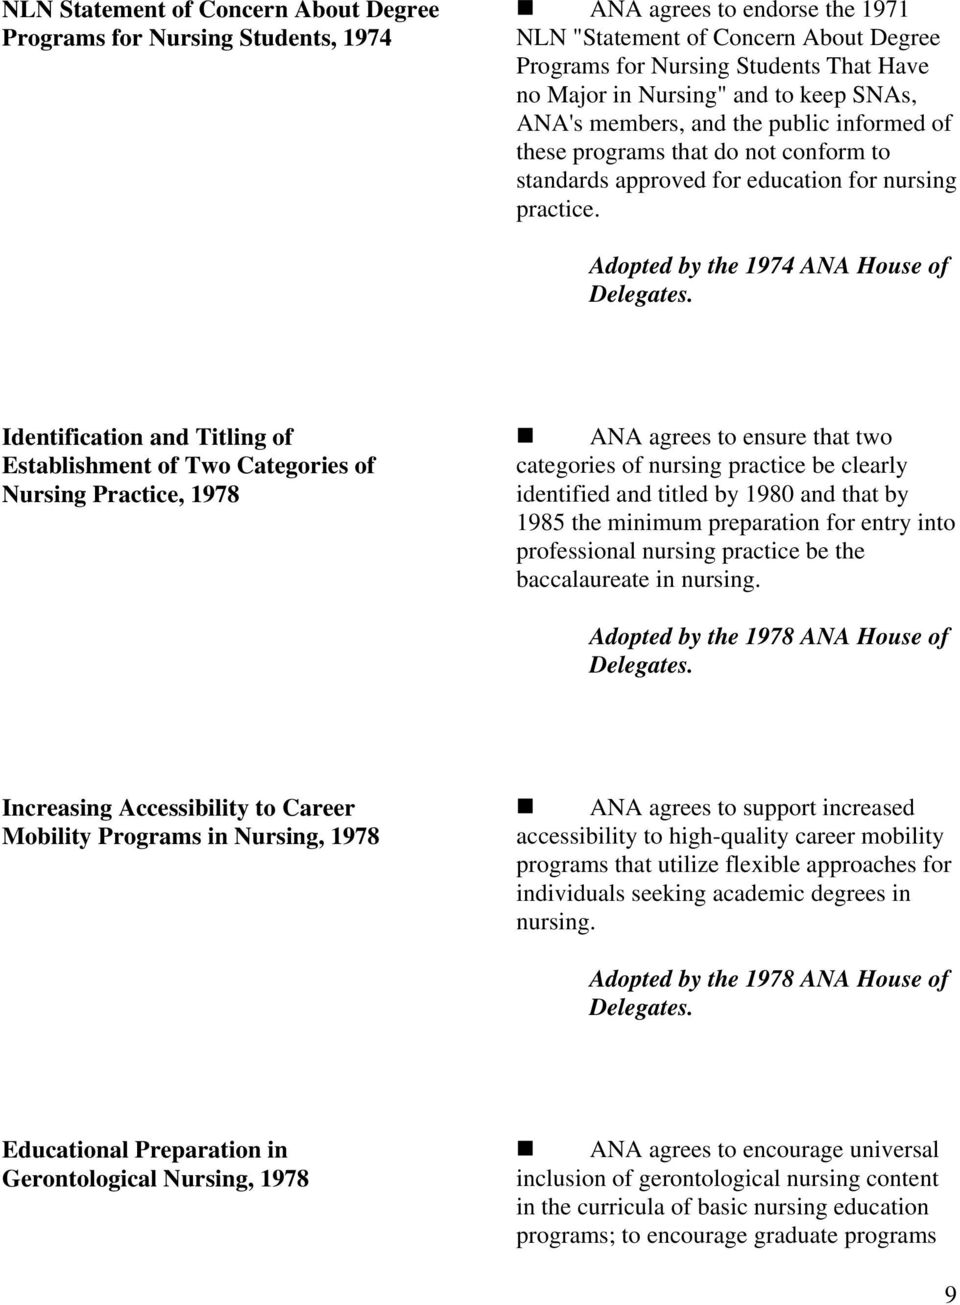 Adopted by the 1974 ANA House of Identification and Titling of Establishment of Two Categories of Nursing Practice, 1978 ANA agrees to ensure that two categories of nursing practice be clearly